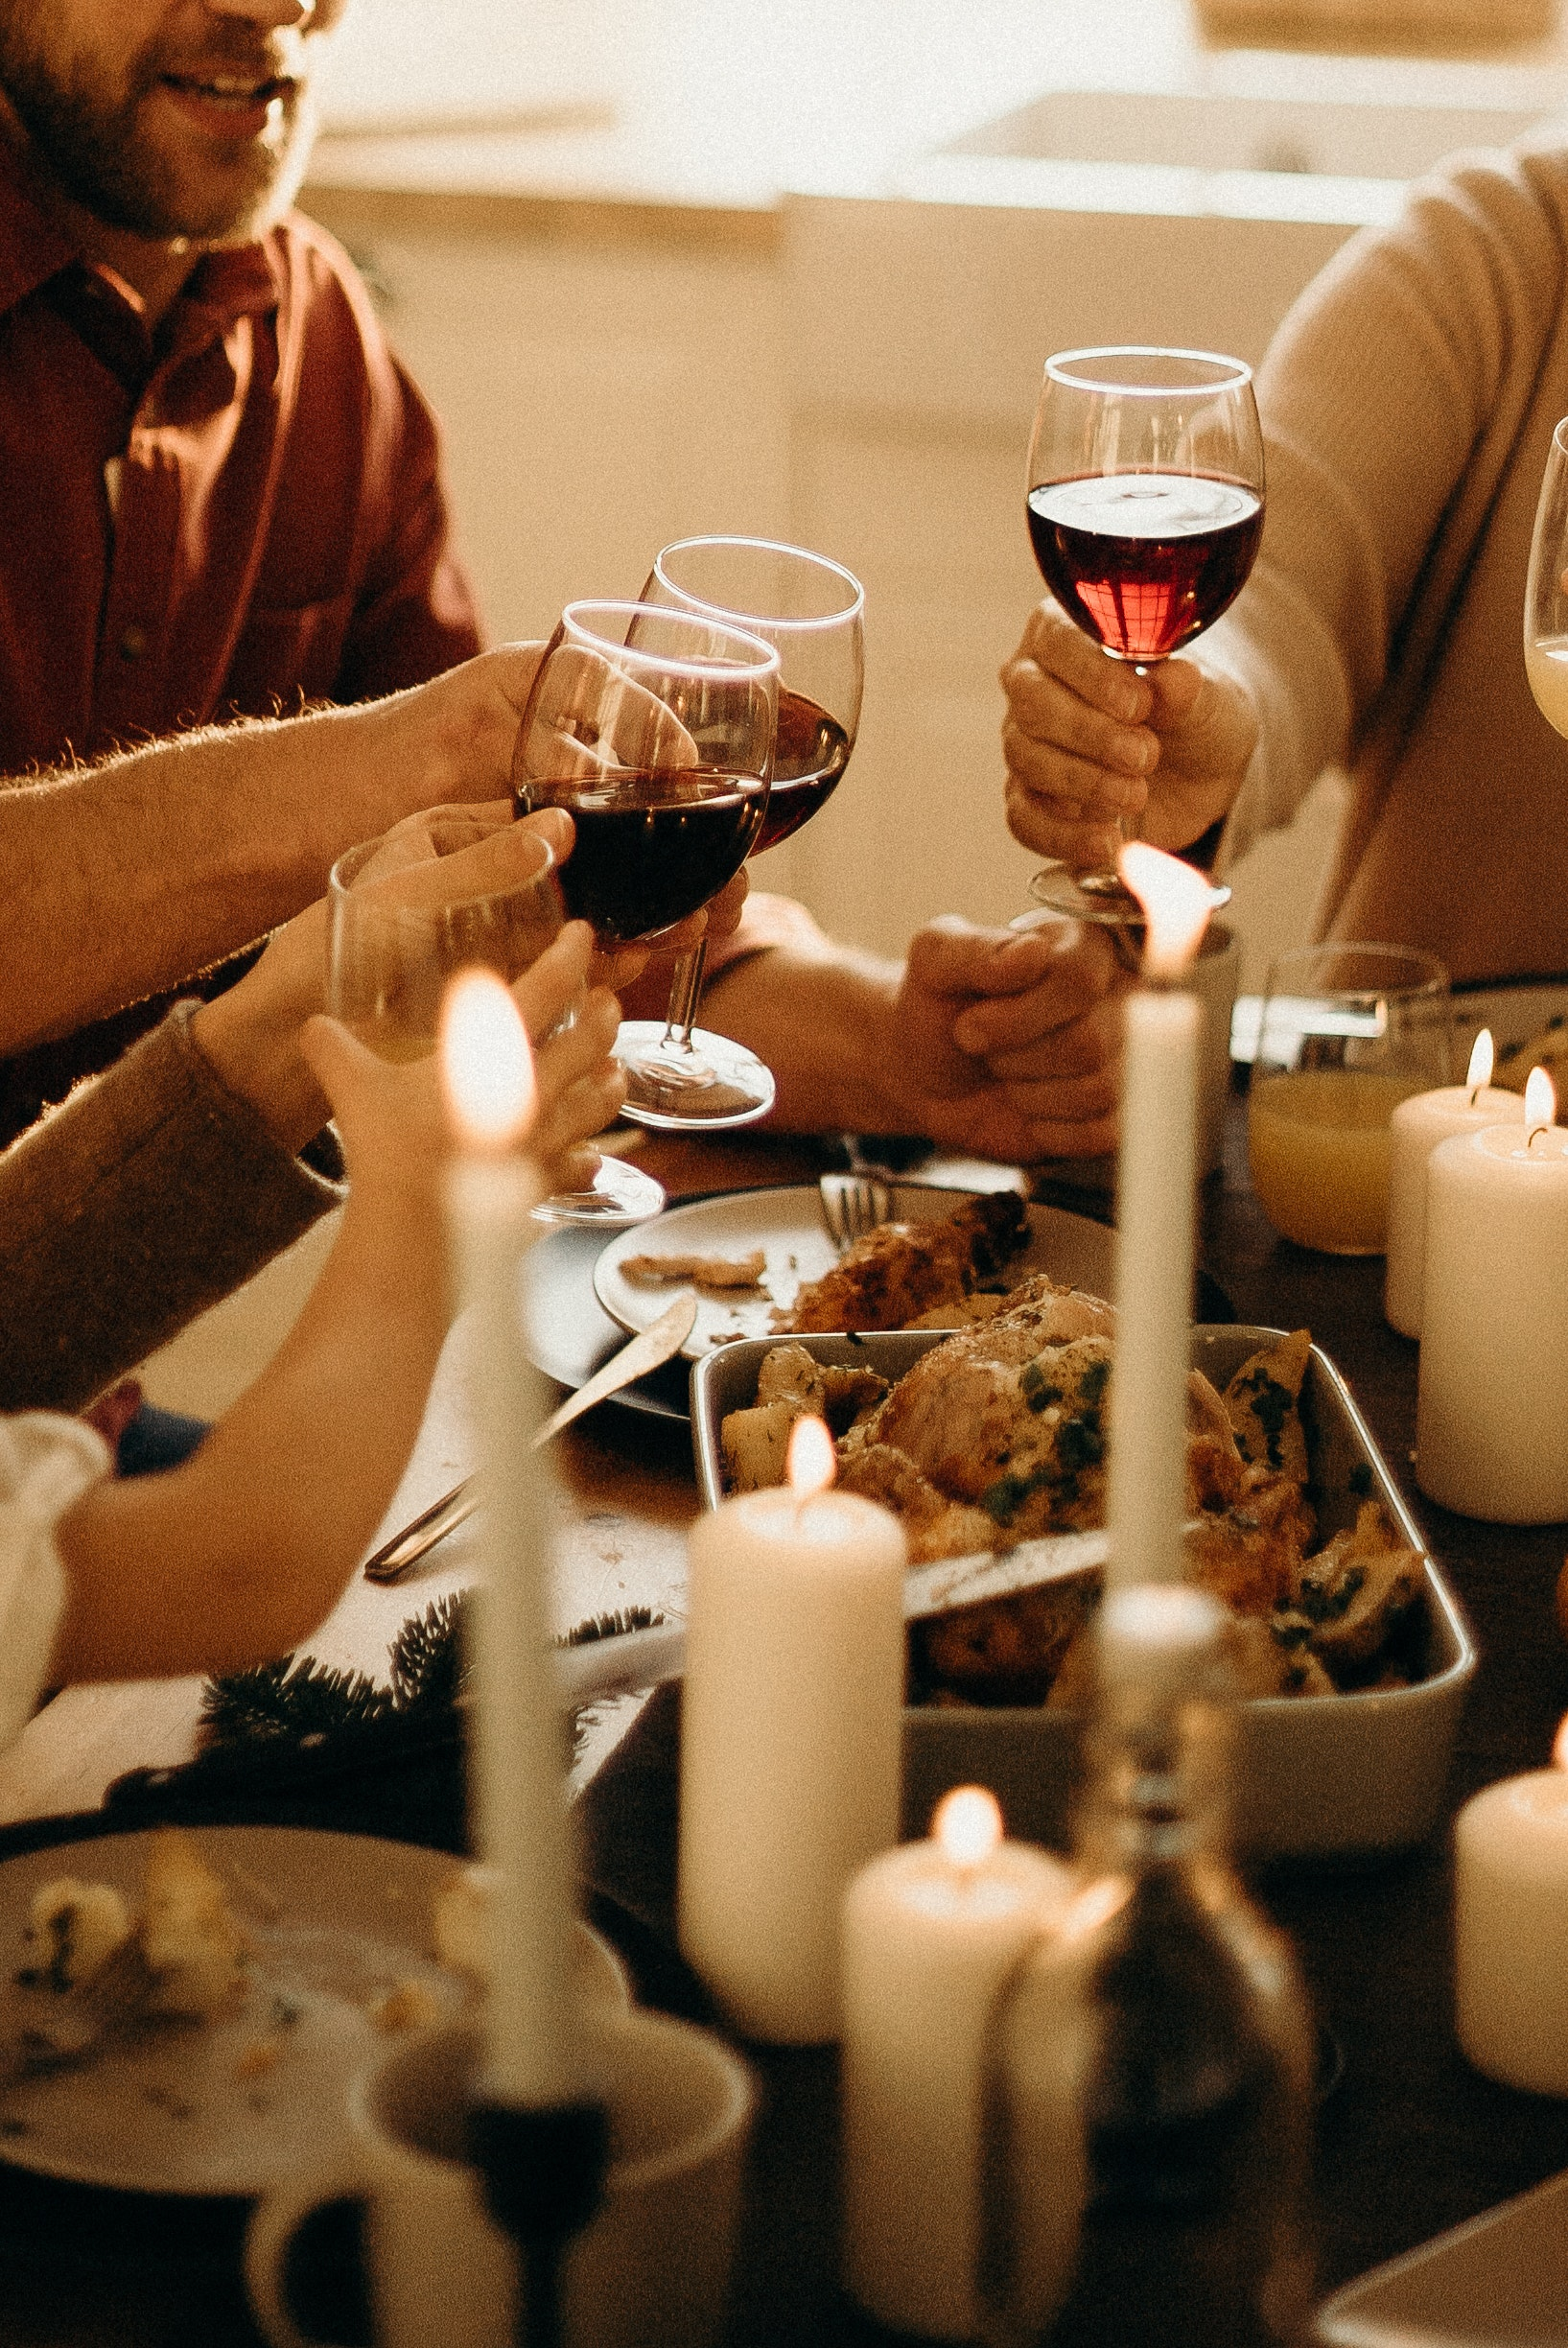 Staying Healthy at the Holiday Table